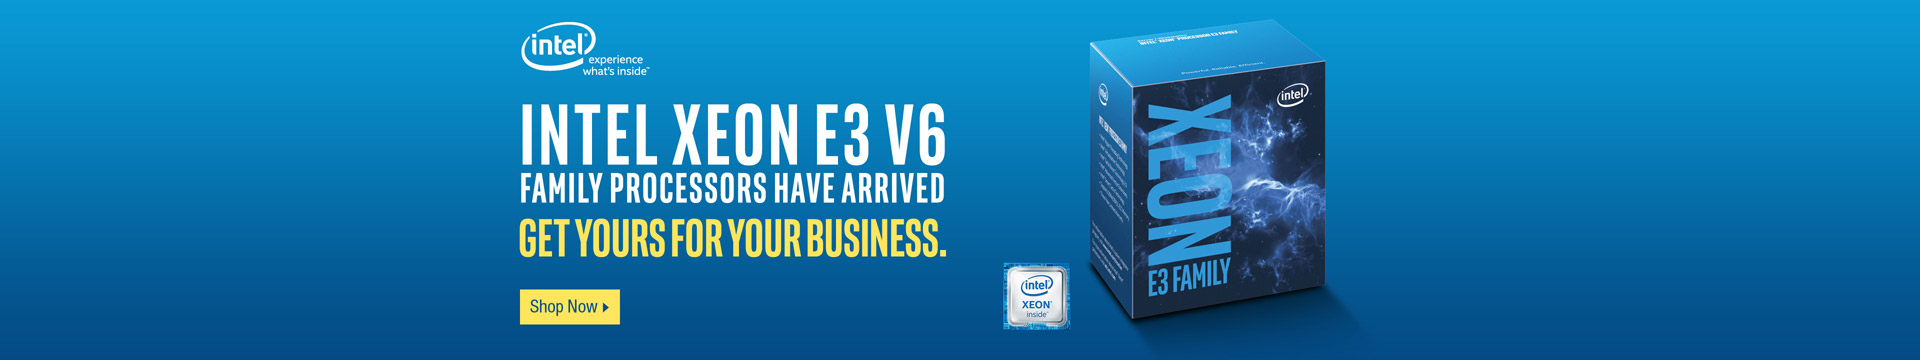 Intel Xeon E3 V6 Family Processors Have Arrived